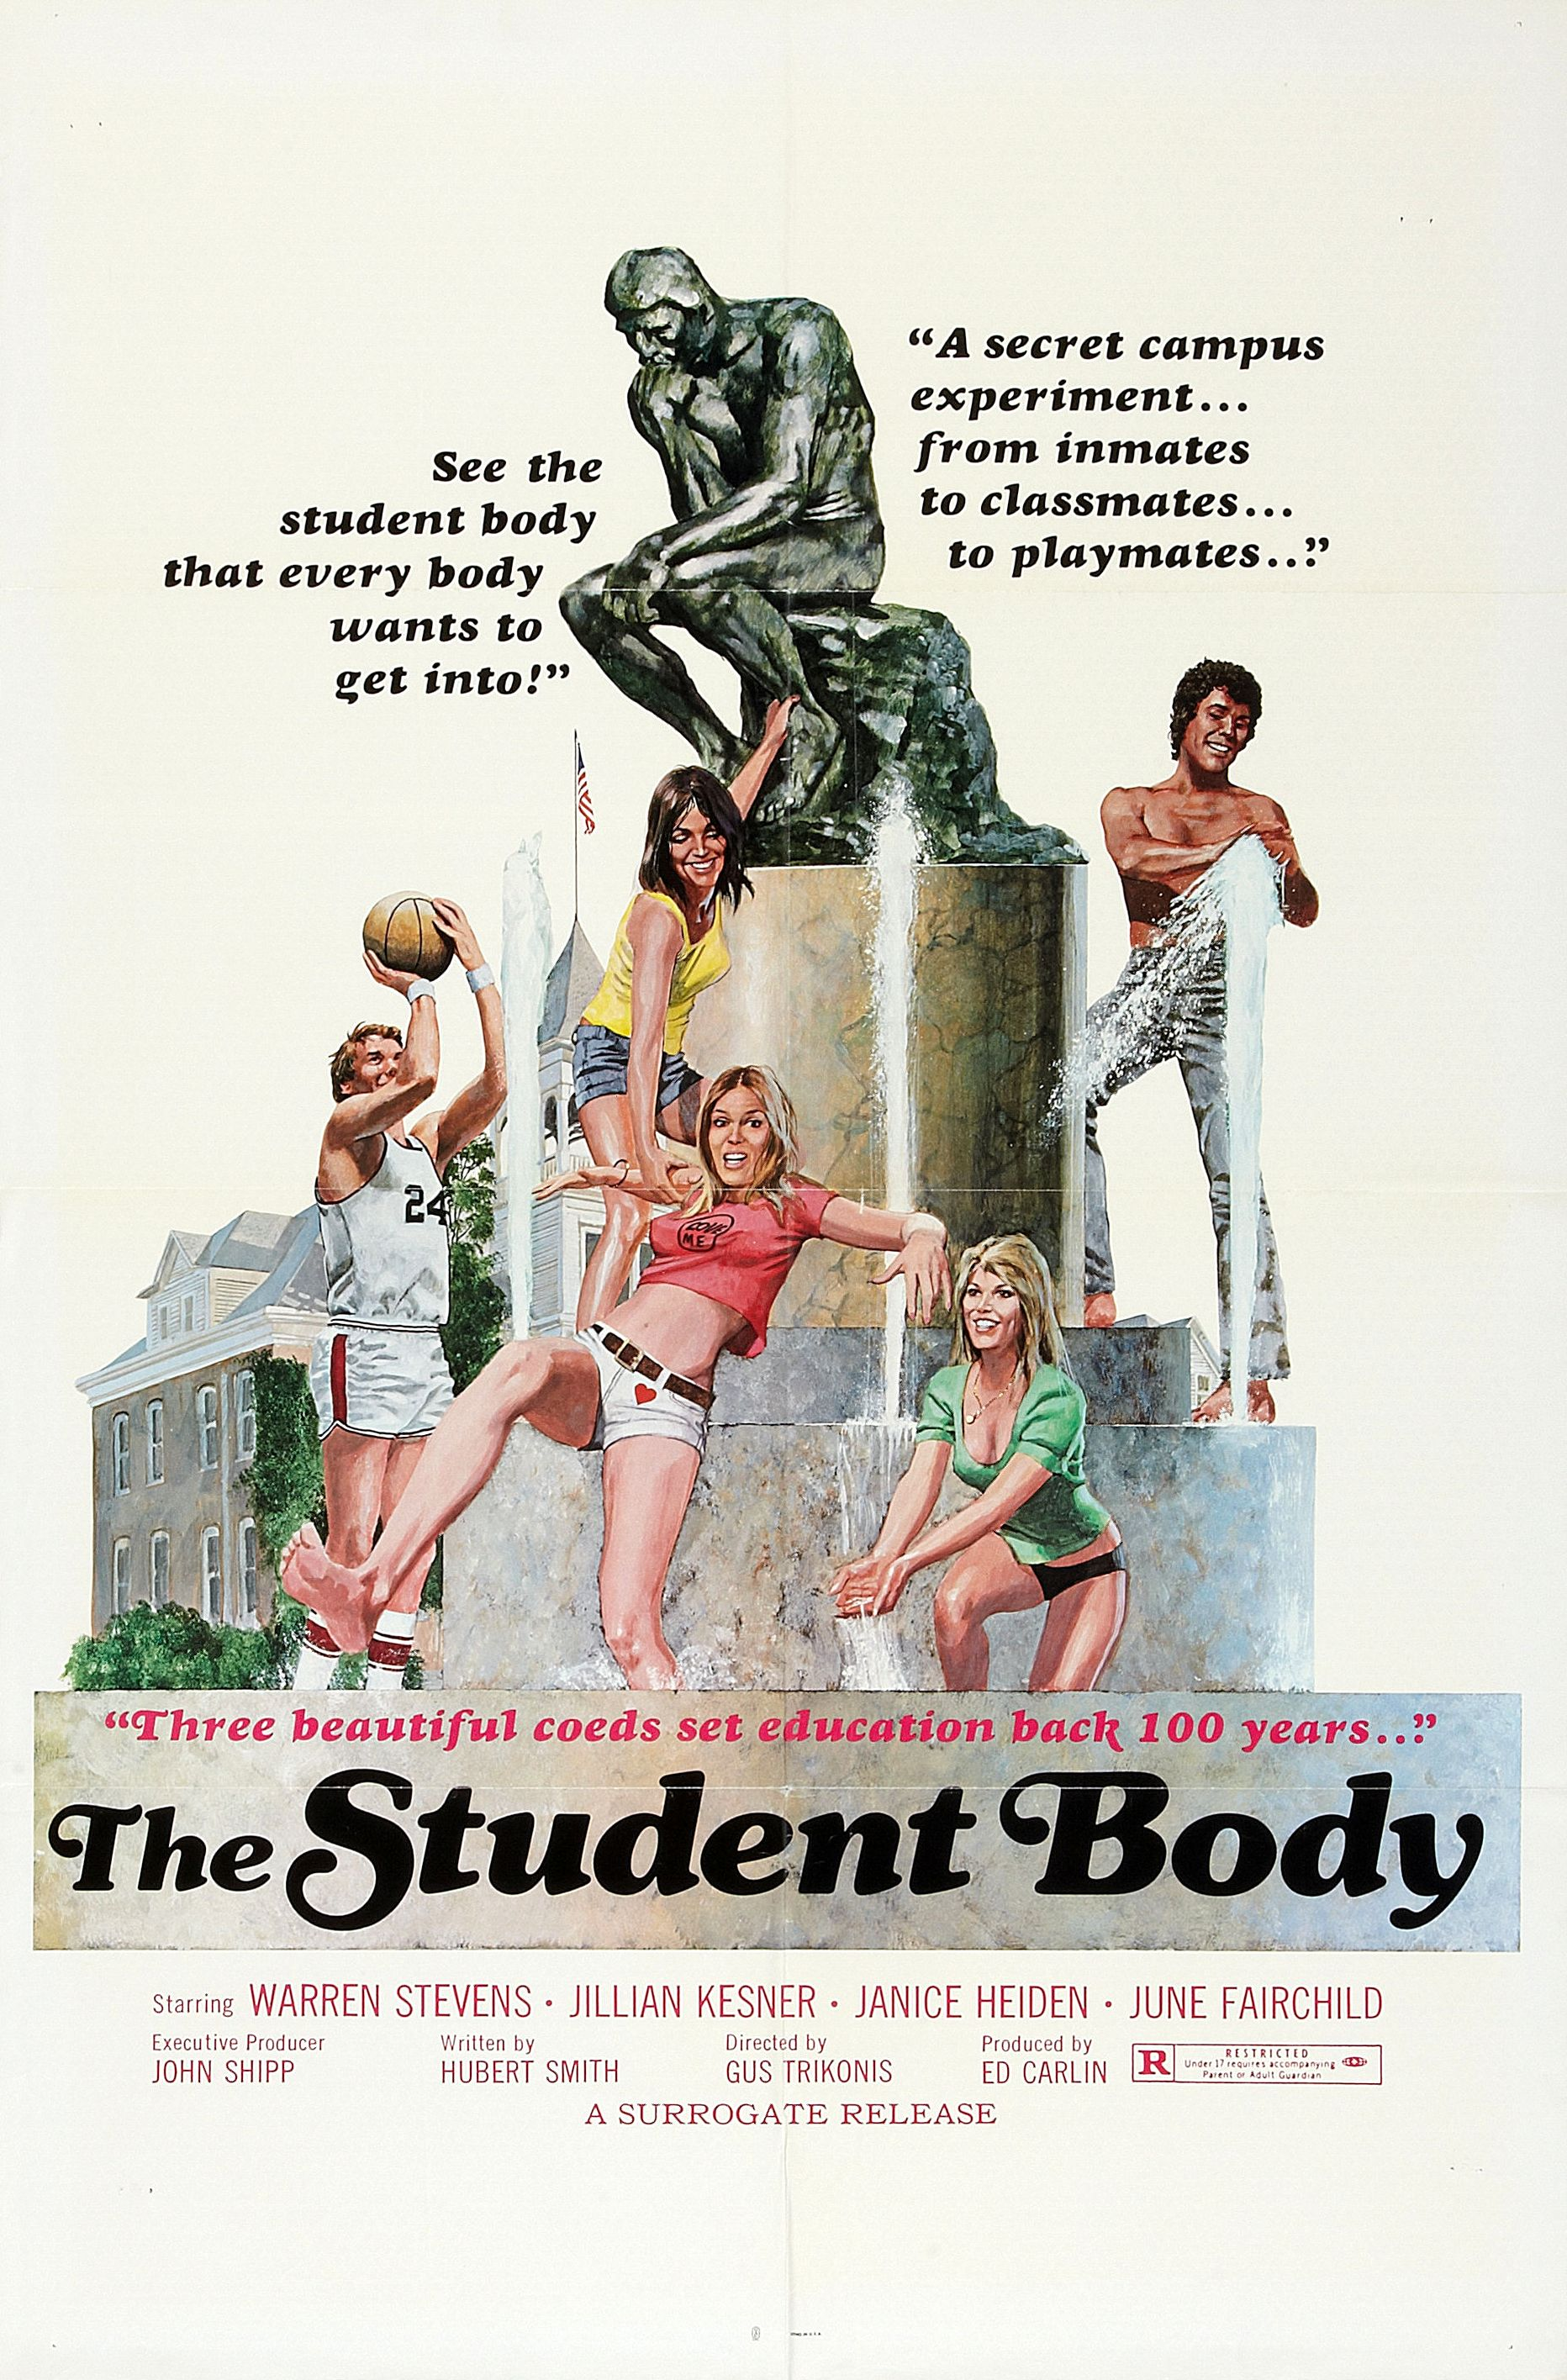 The Student Body (1976)